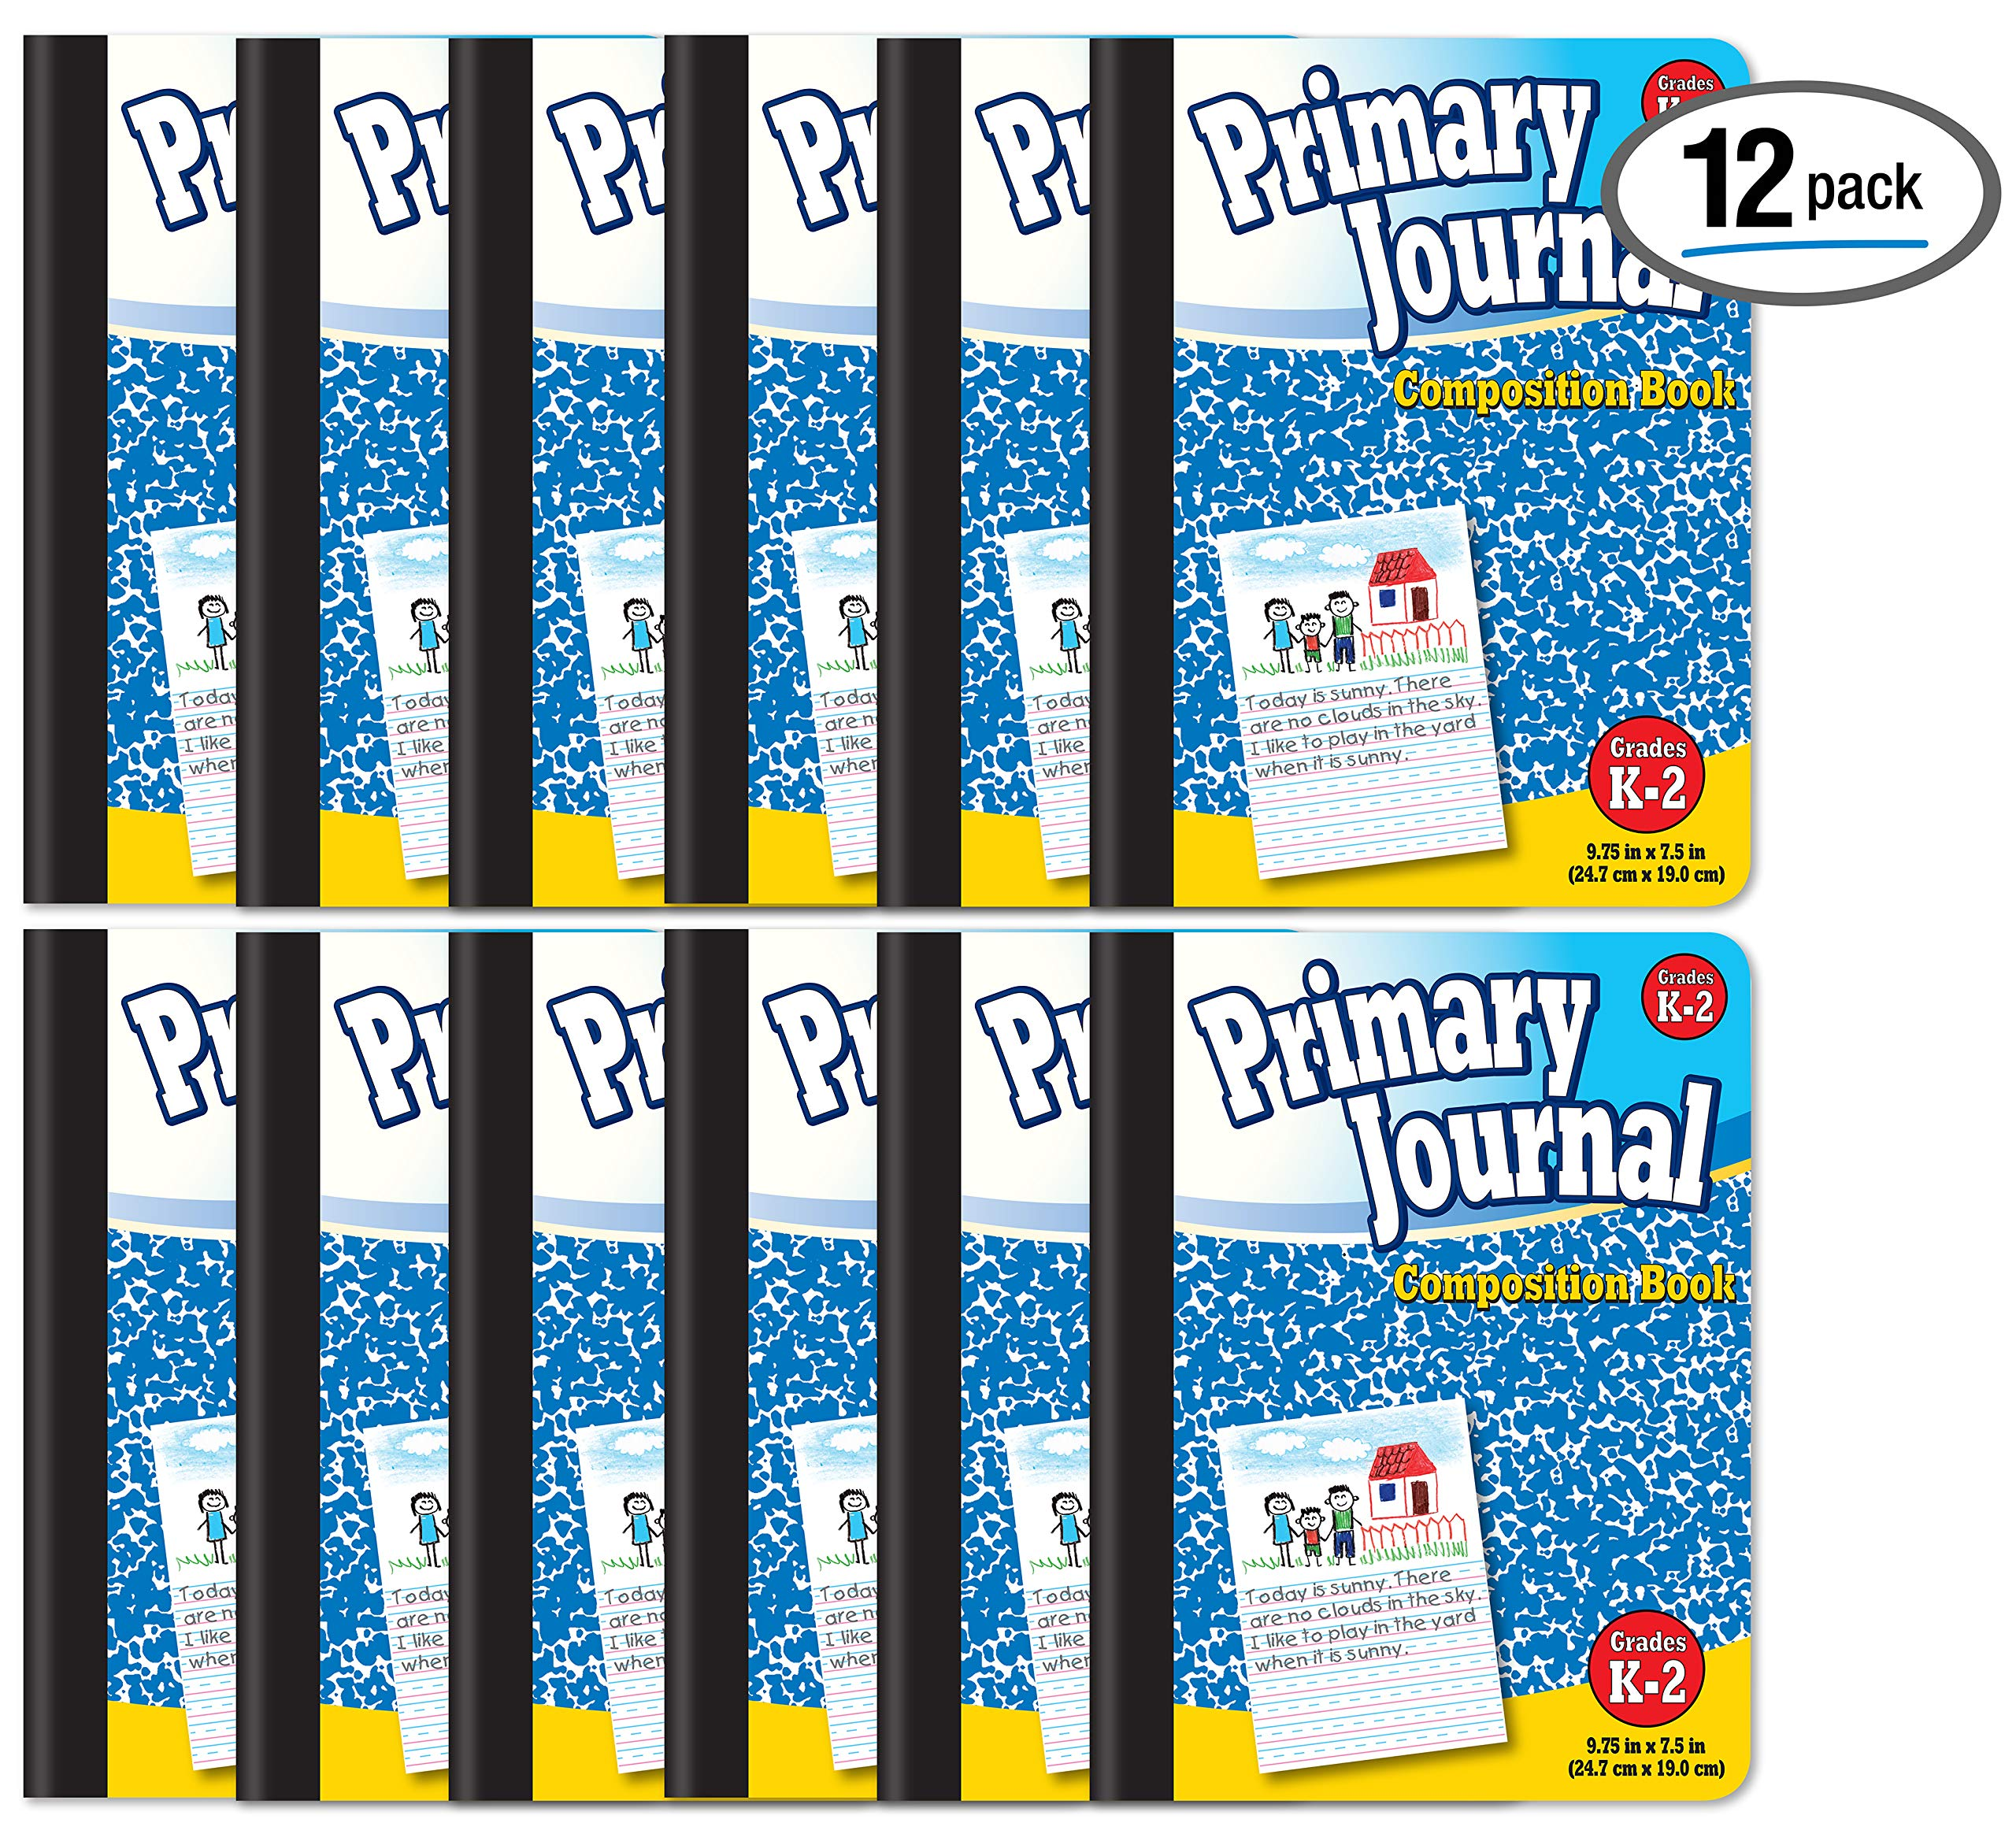 Primary Journal, Hardcover, Primary Composition Book Notebook - Grades K-2, 100 Sheet, One Subject, 9.75'' x 7.5'', Blue Cover-12 Pack by Better Office Products